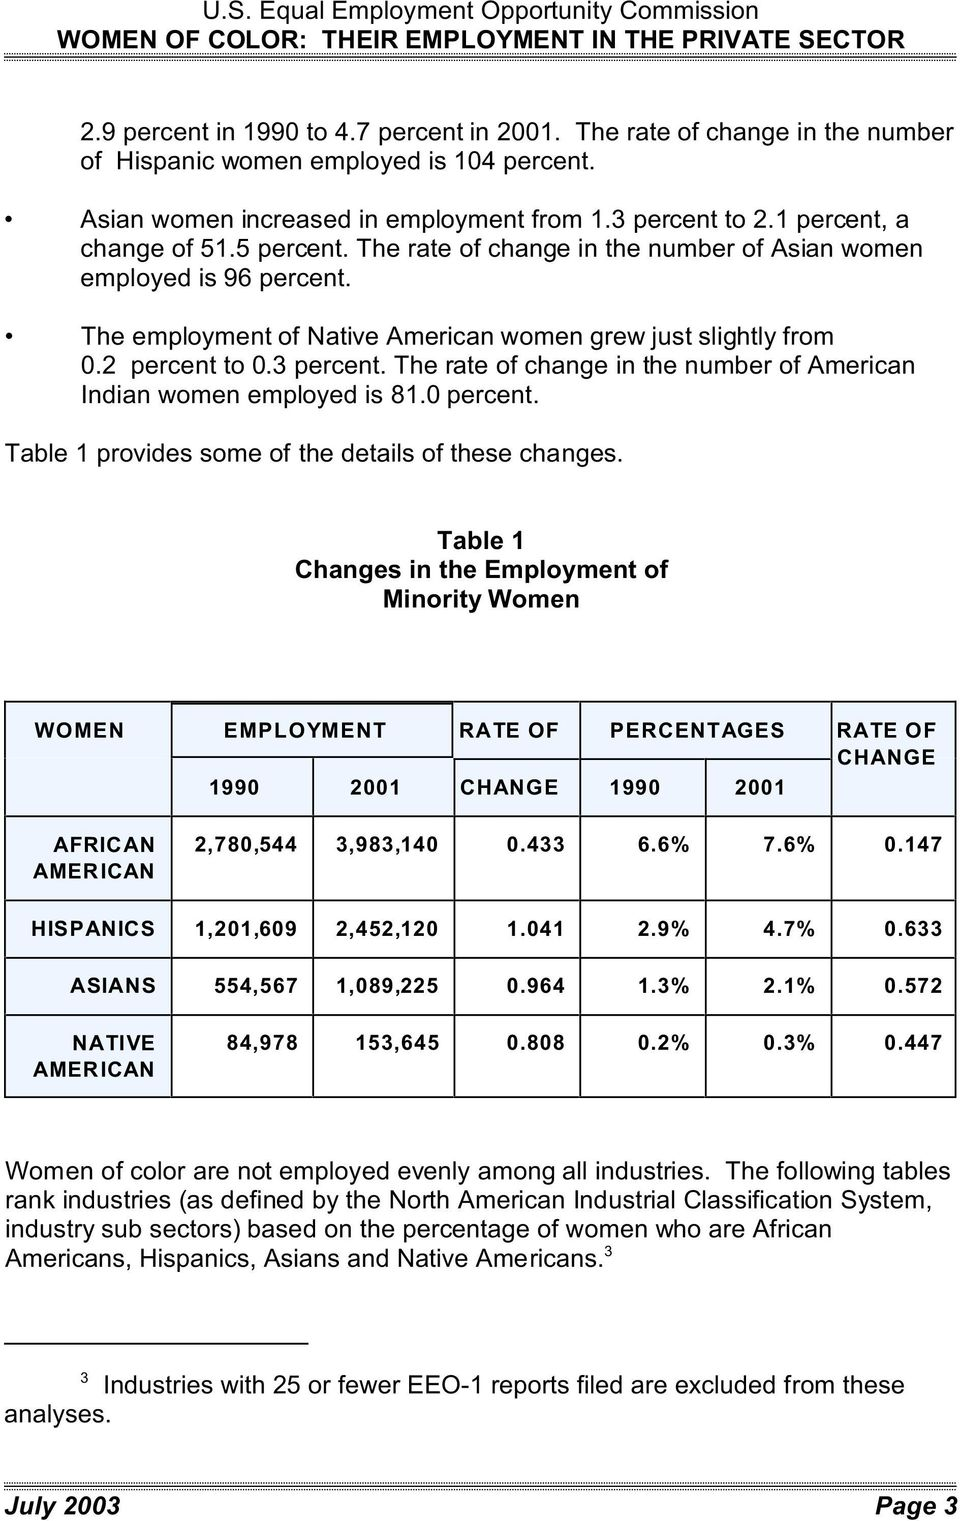 The employment of Native American women grew just slightly from 0.2 percent to 0.3 percent. The rate of change in the number of American Indian women employed is 81.0 percent.